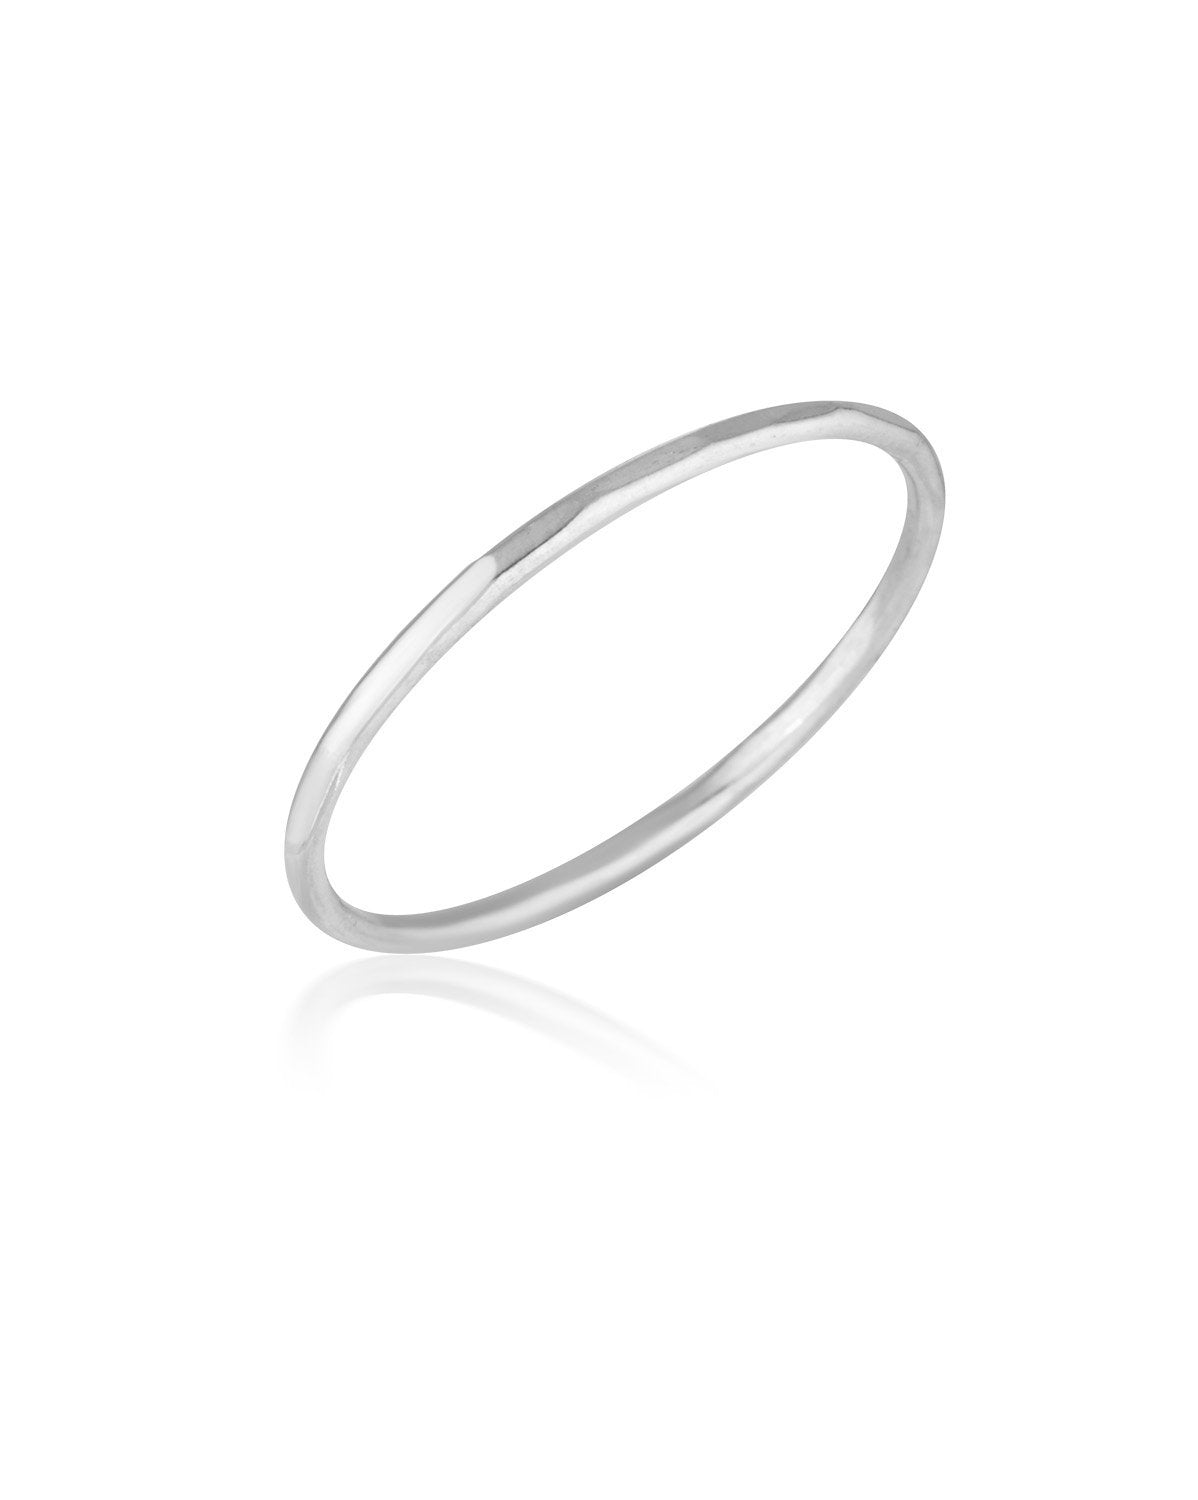 Journey Ring (Sterling Silver) by Sit & Wonder. A lightly hammered plain band.